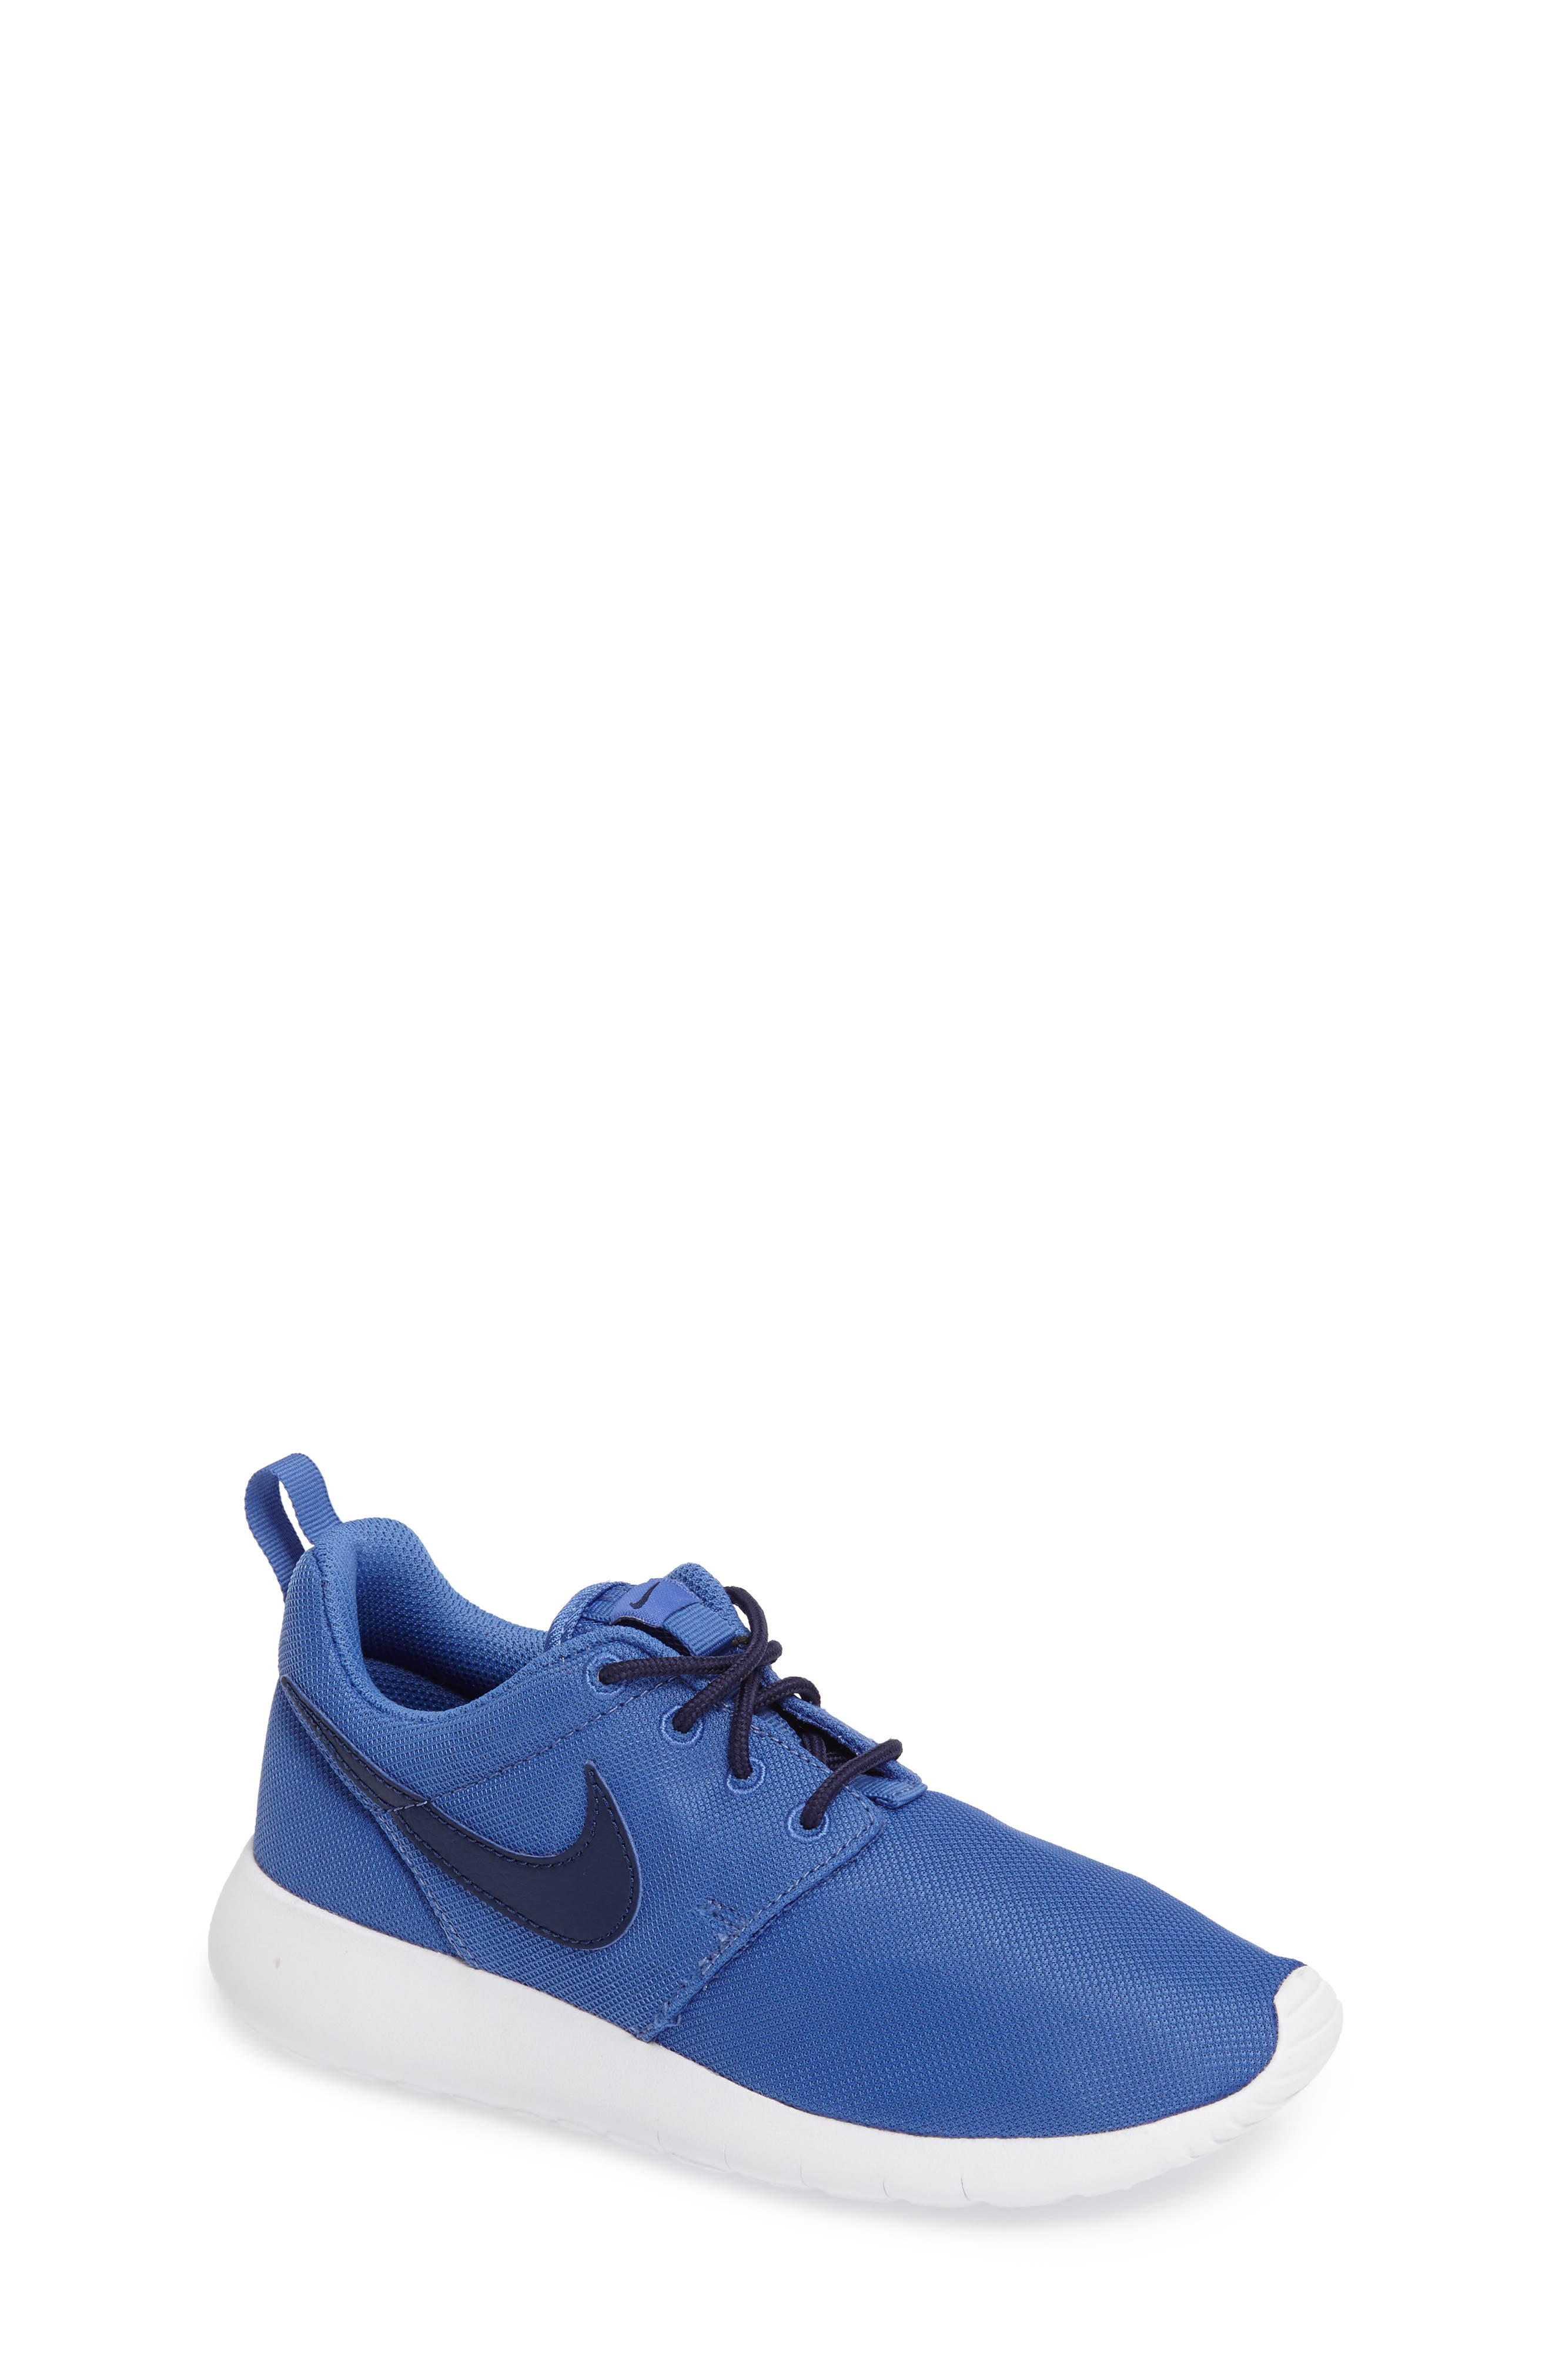 'Roshe Run' Sneaker,                             Main thumbnail 47, color,